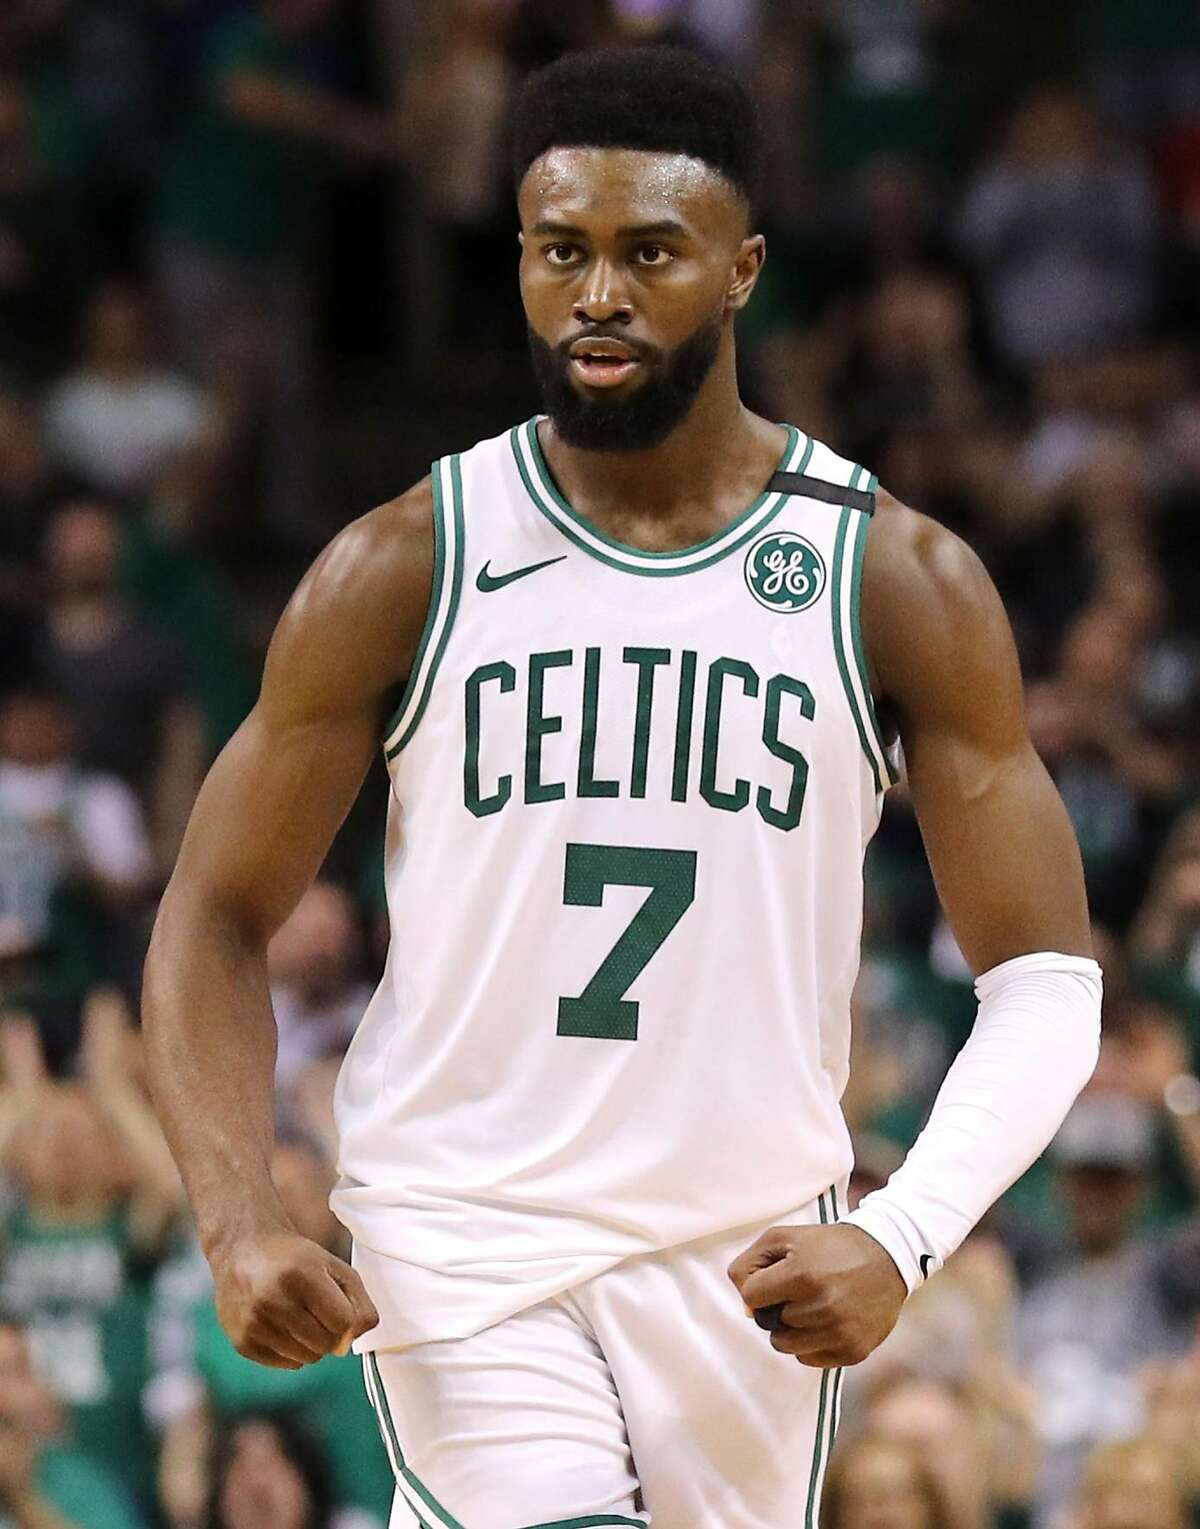 BOSTON, MA - MAY 3: Jaylen Brown #7 of the Boston Celtics celebrates during Game Two of the Eastern Conference Second Round of the 2018 NBA Playoffs against the Philadelphia 76ers at TD Garden on May 3, 2018 in Boston, Massachusetts. The Celtics defeat the 76ers 108-103. (Photo by Maddie Meyer/Getty Images)